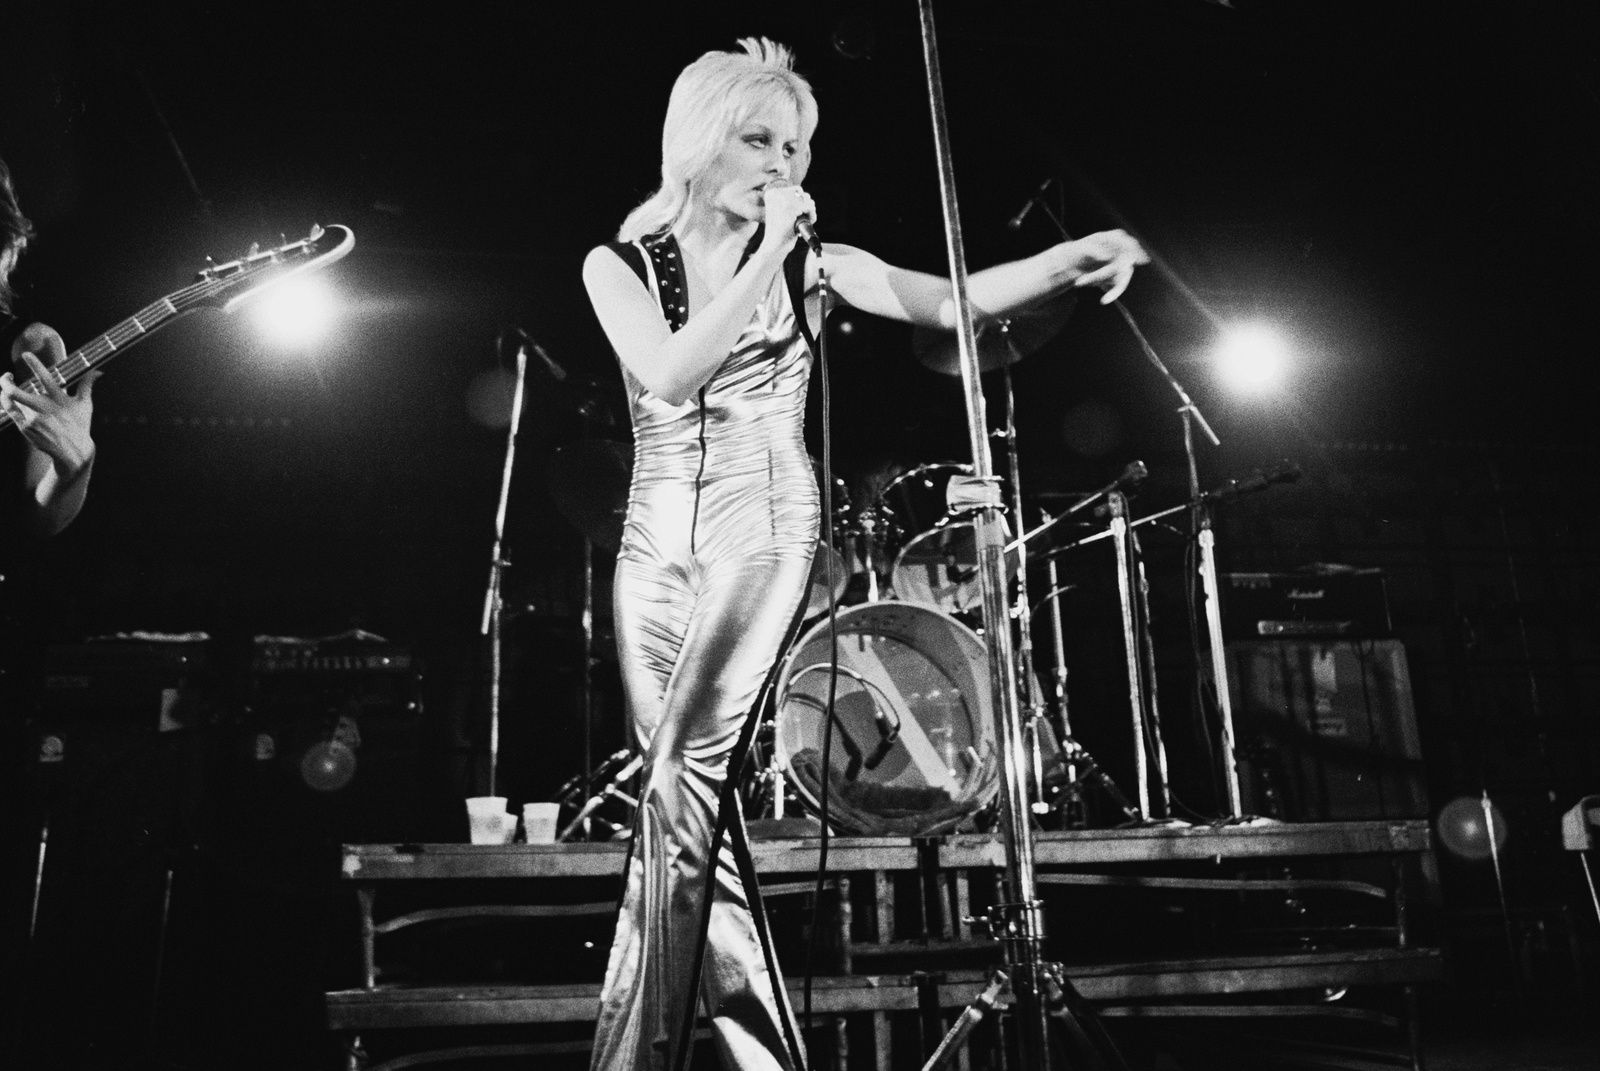 Cherie Currie on stage with the Runaways